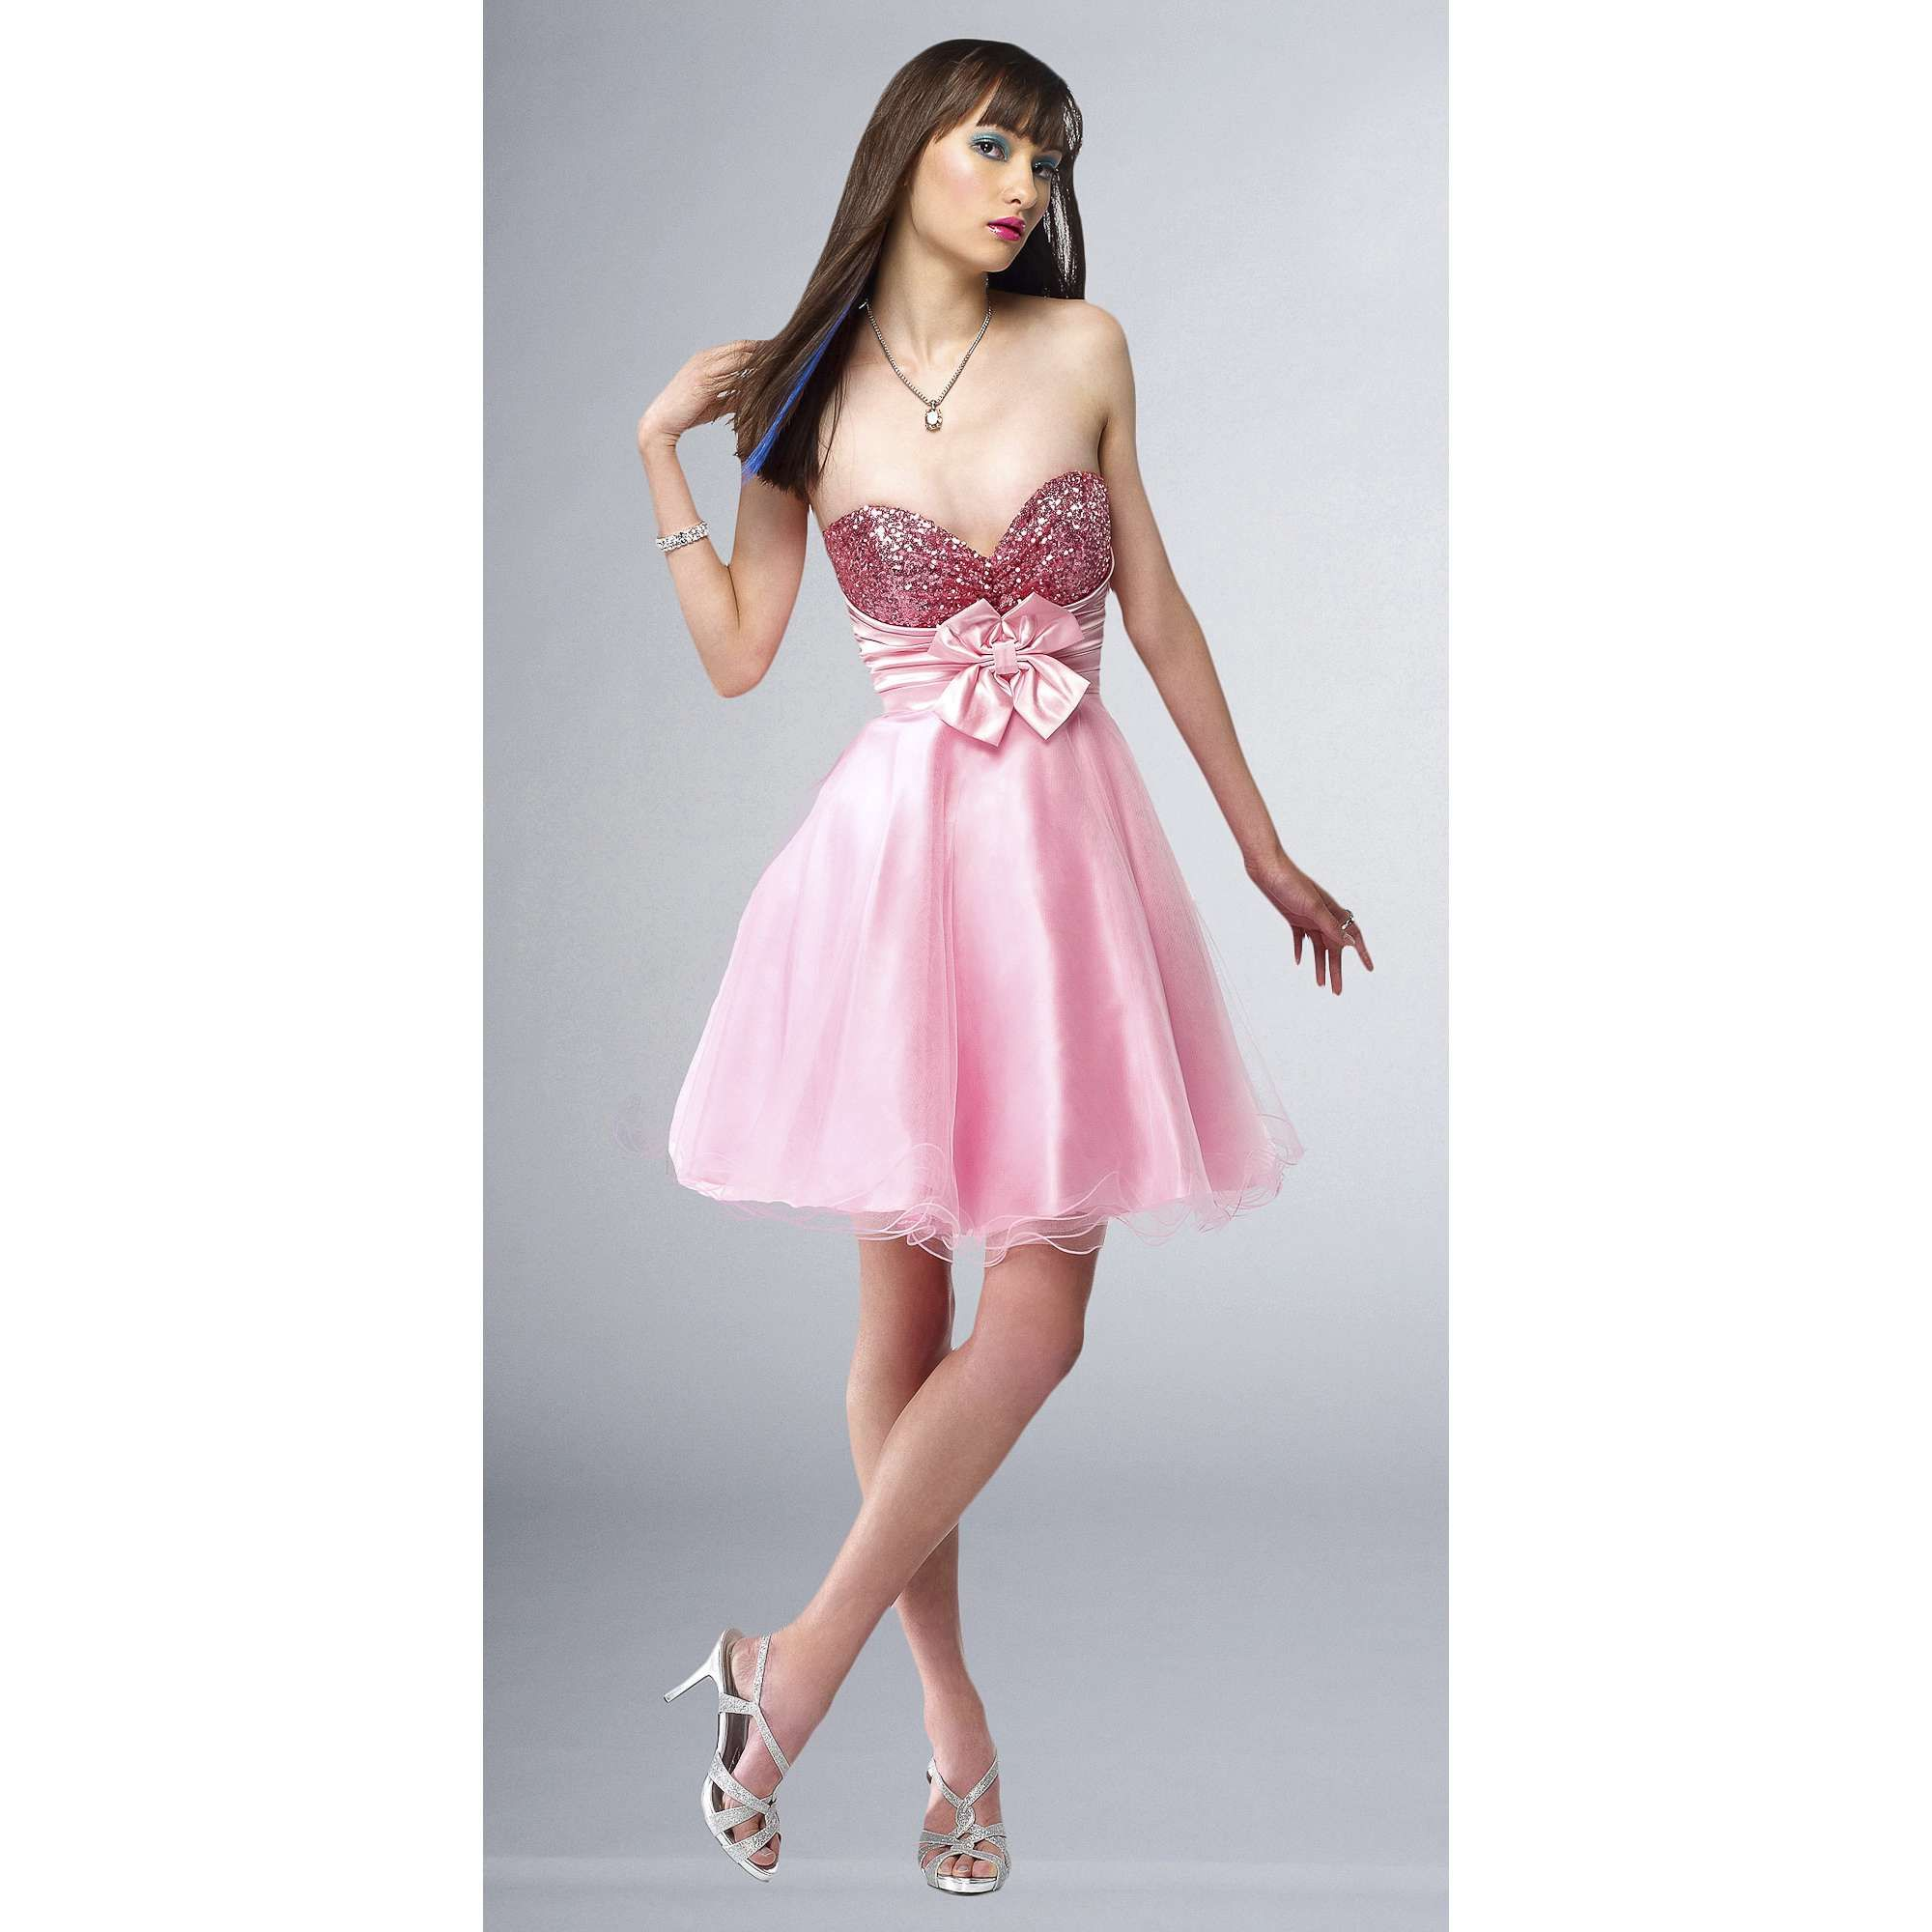 Pinkpromdresses pink prom dress pinterest prom pink